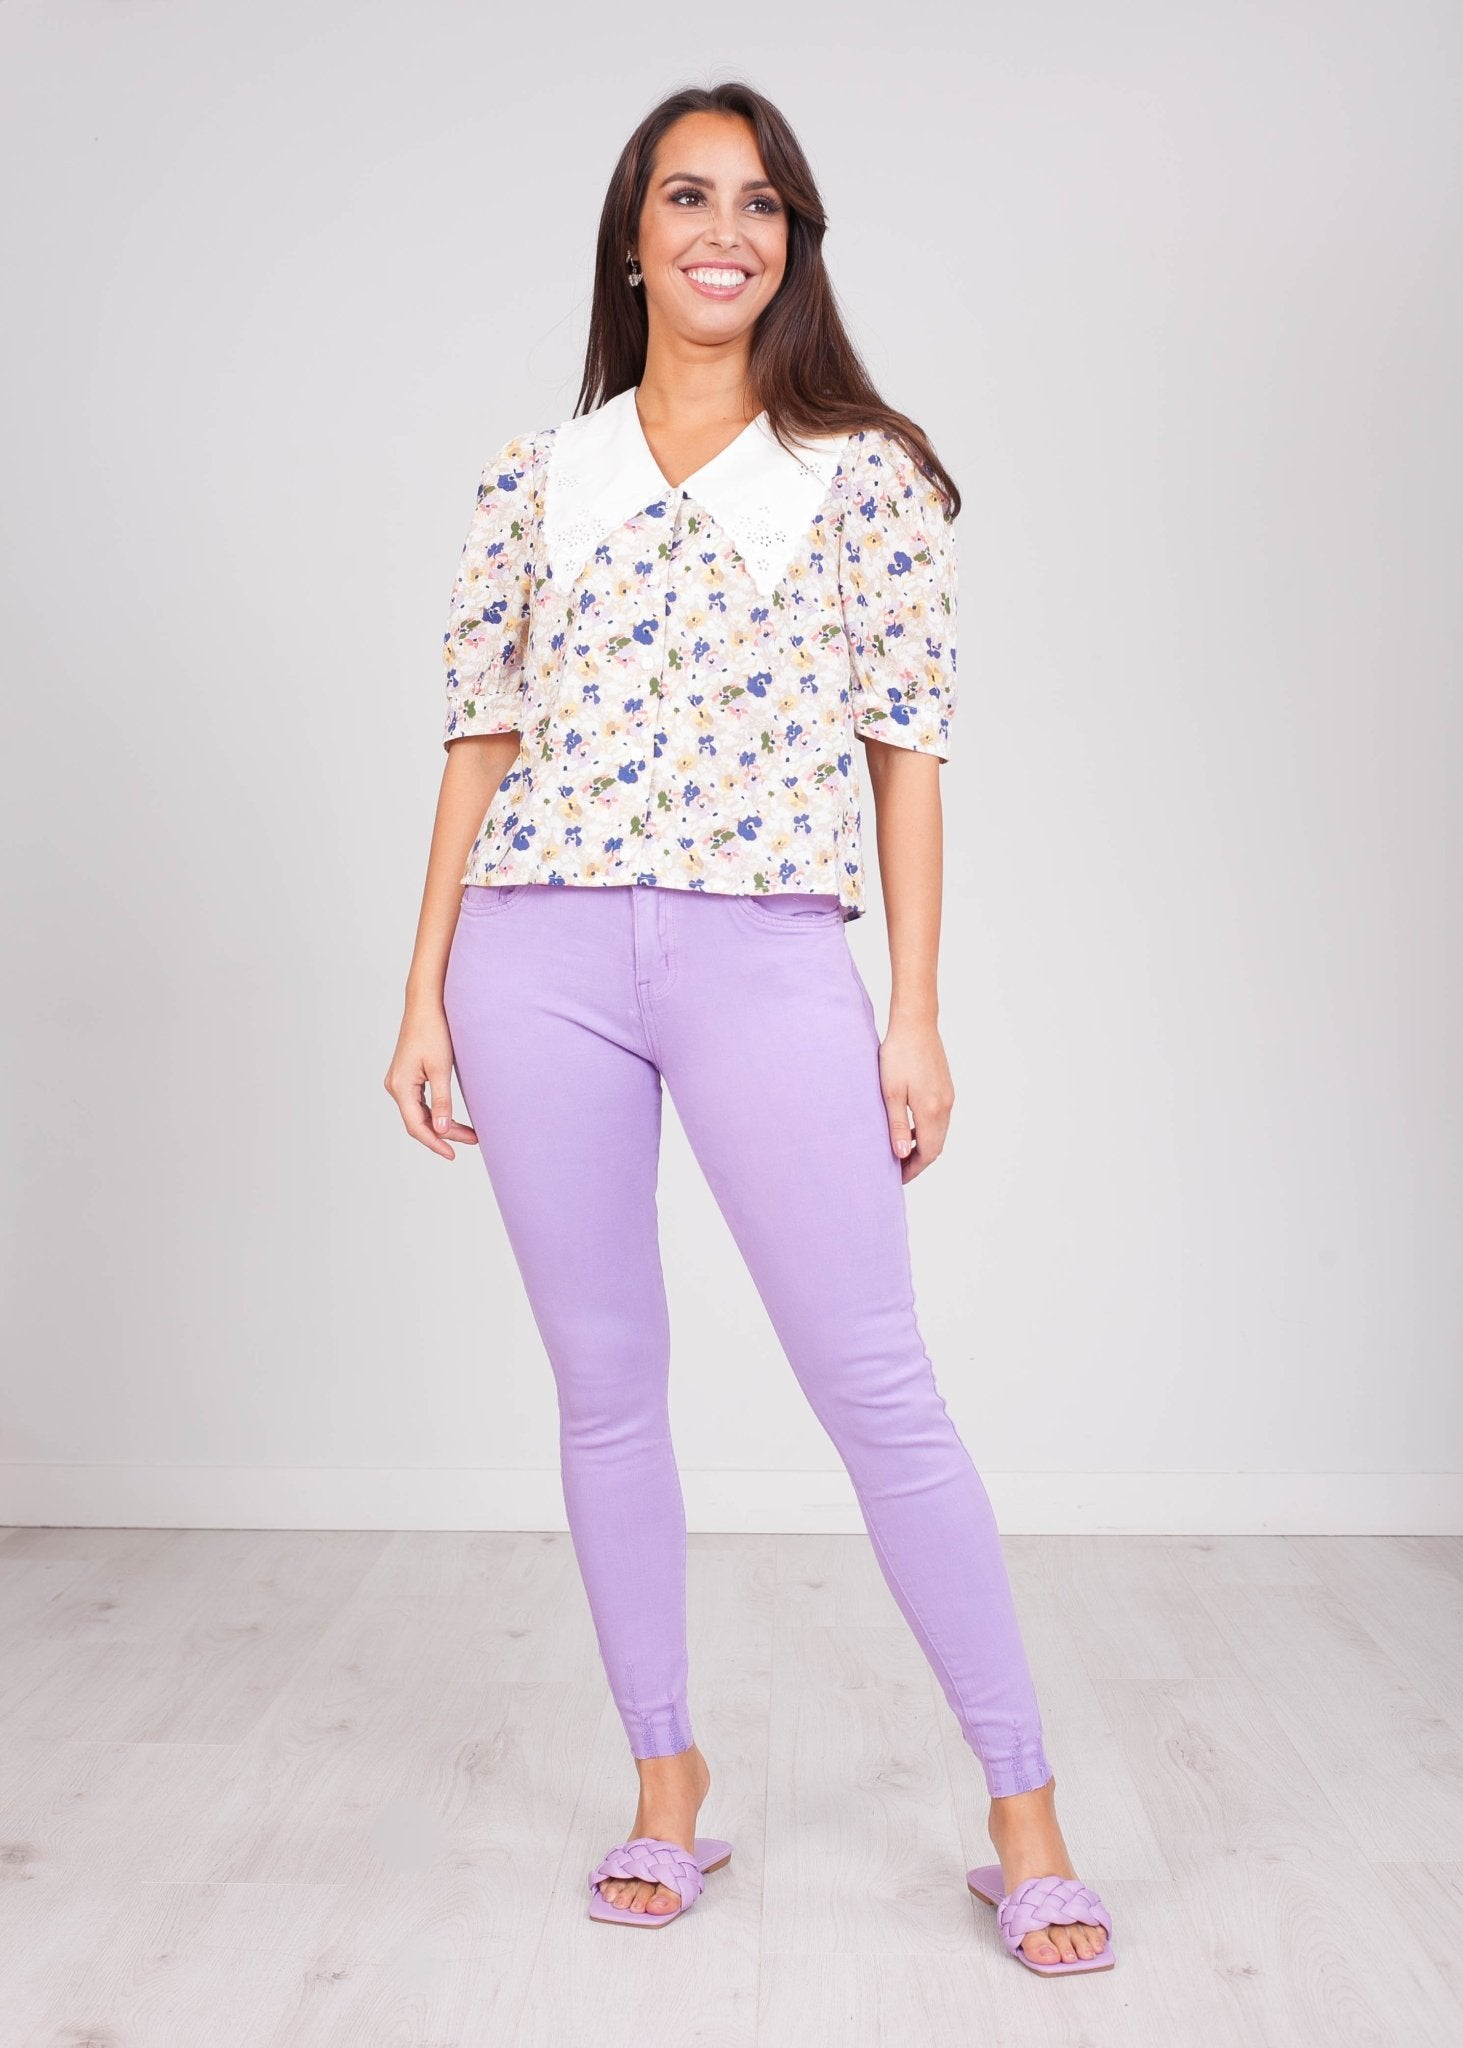 Emilia Floral White Collar Blouse - The Walk in Wardrobe